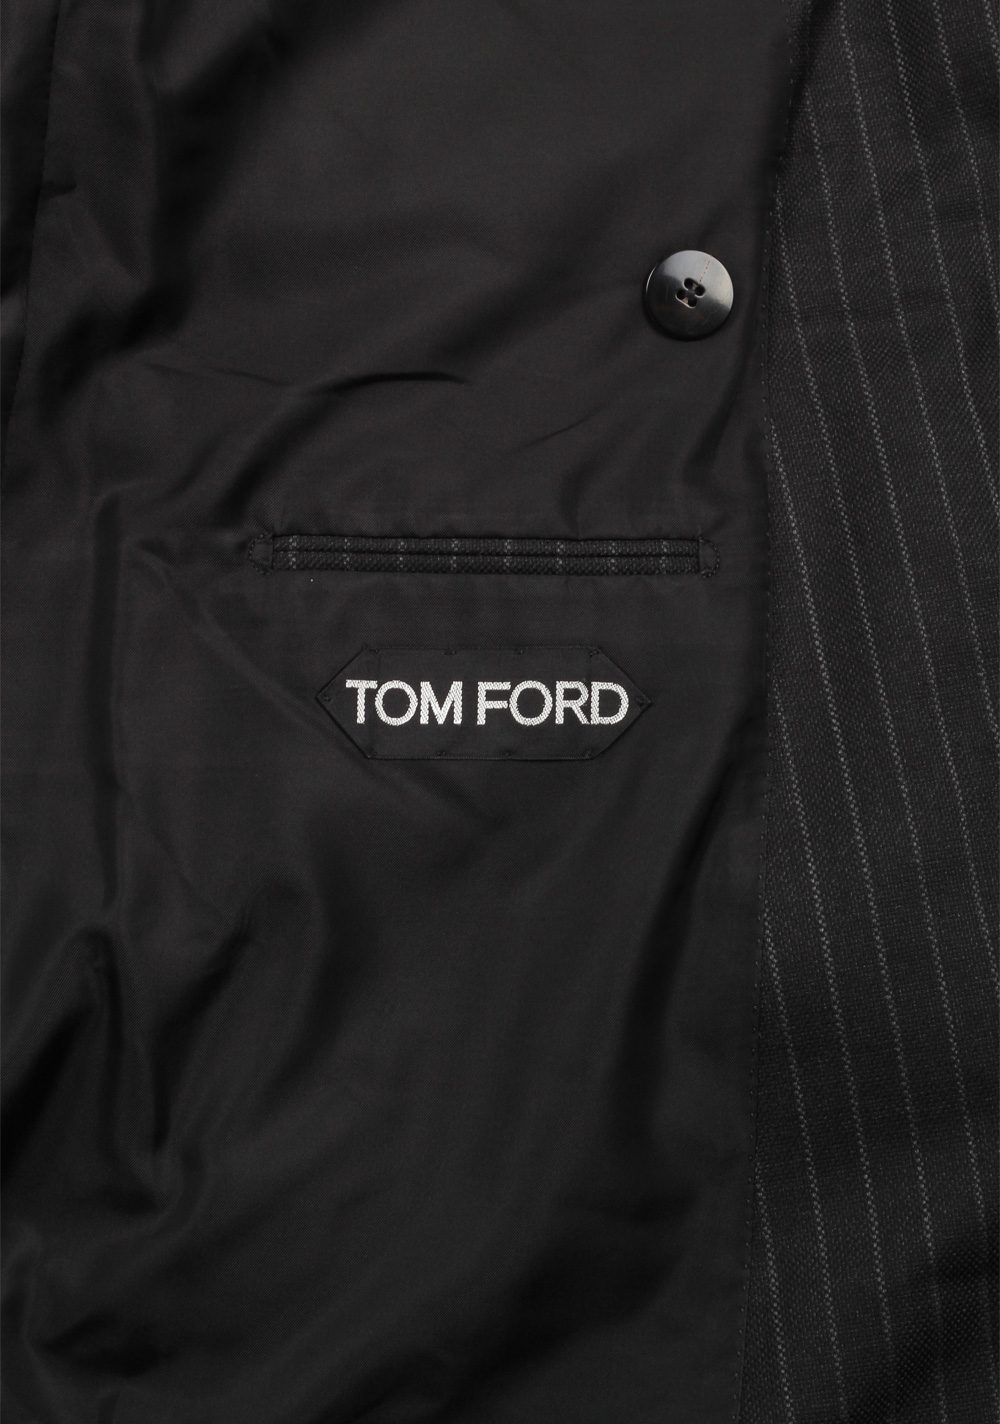 TOM FORD Shelton Brown Double Breasted Suit Size 48 / 38R U.S. In Wool Silk | Costume Limité